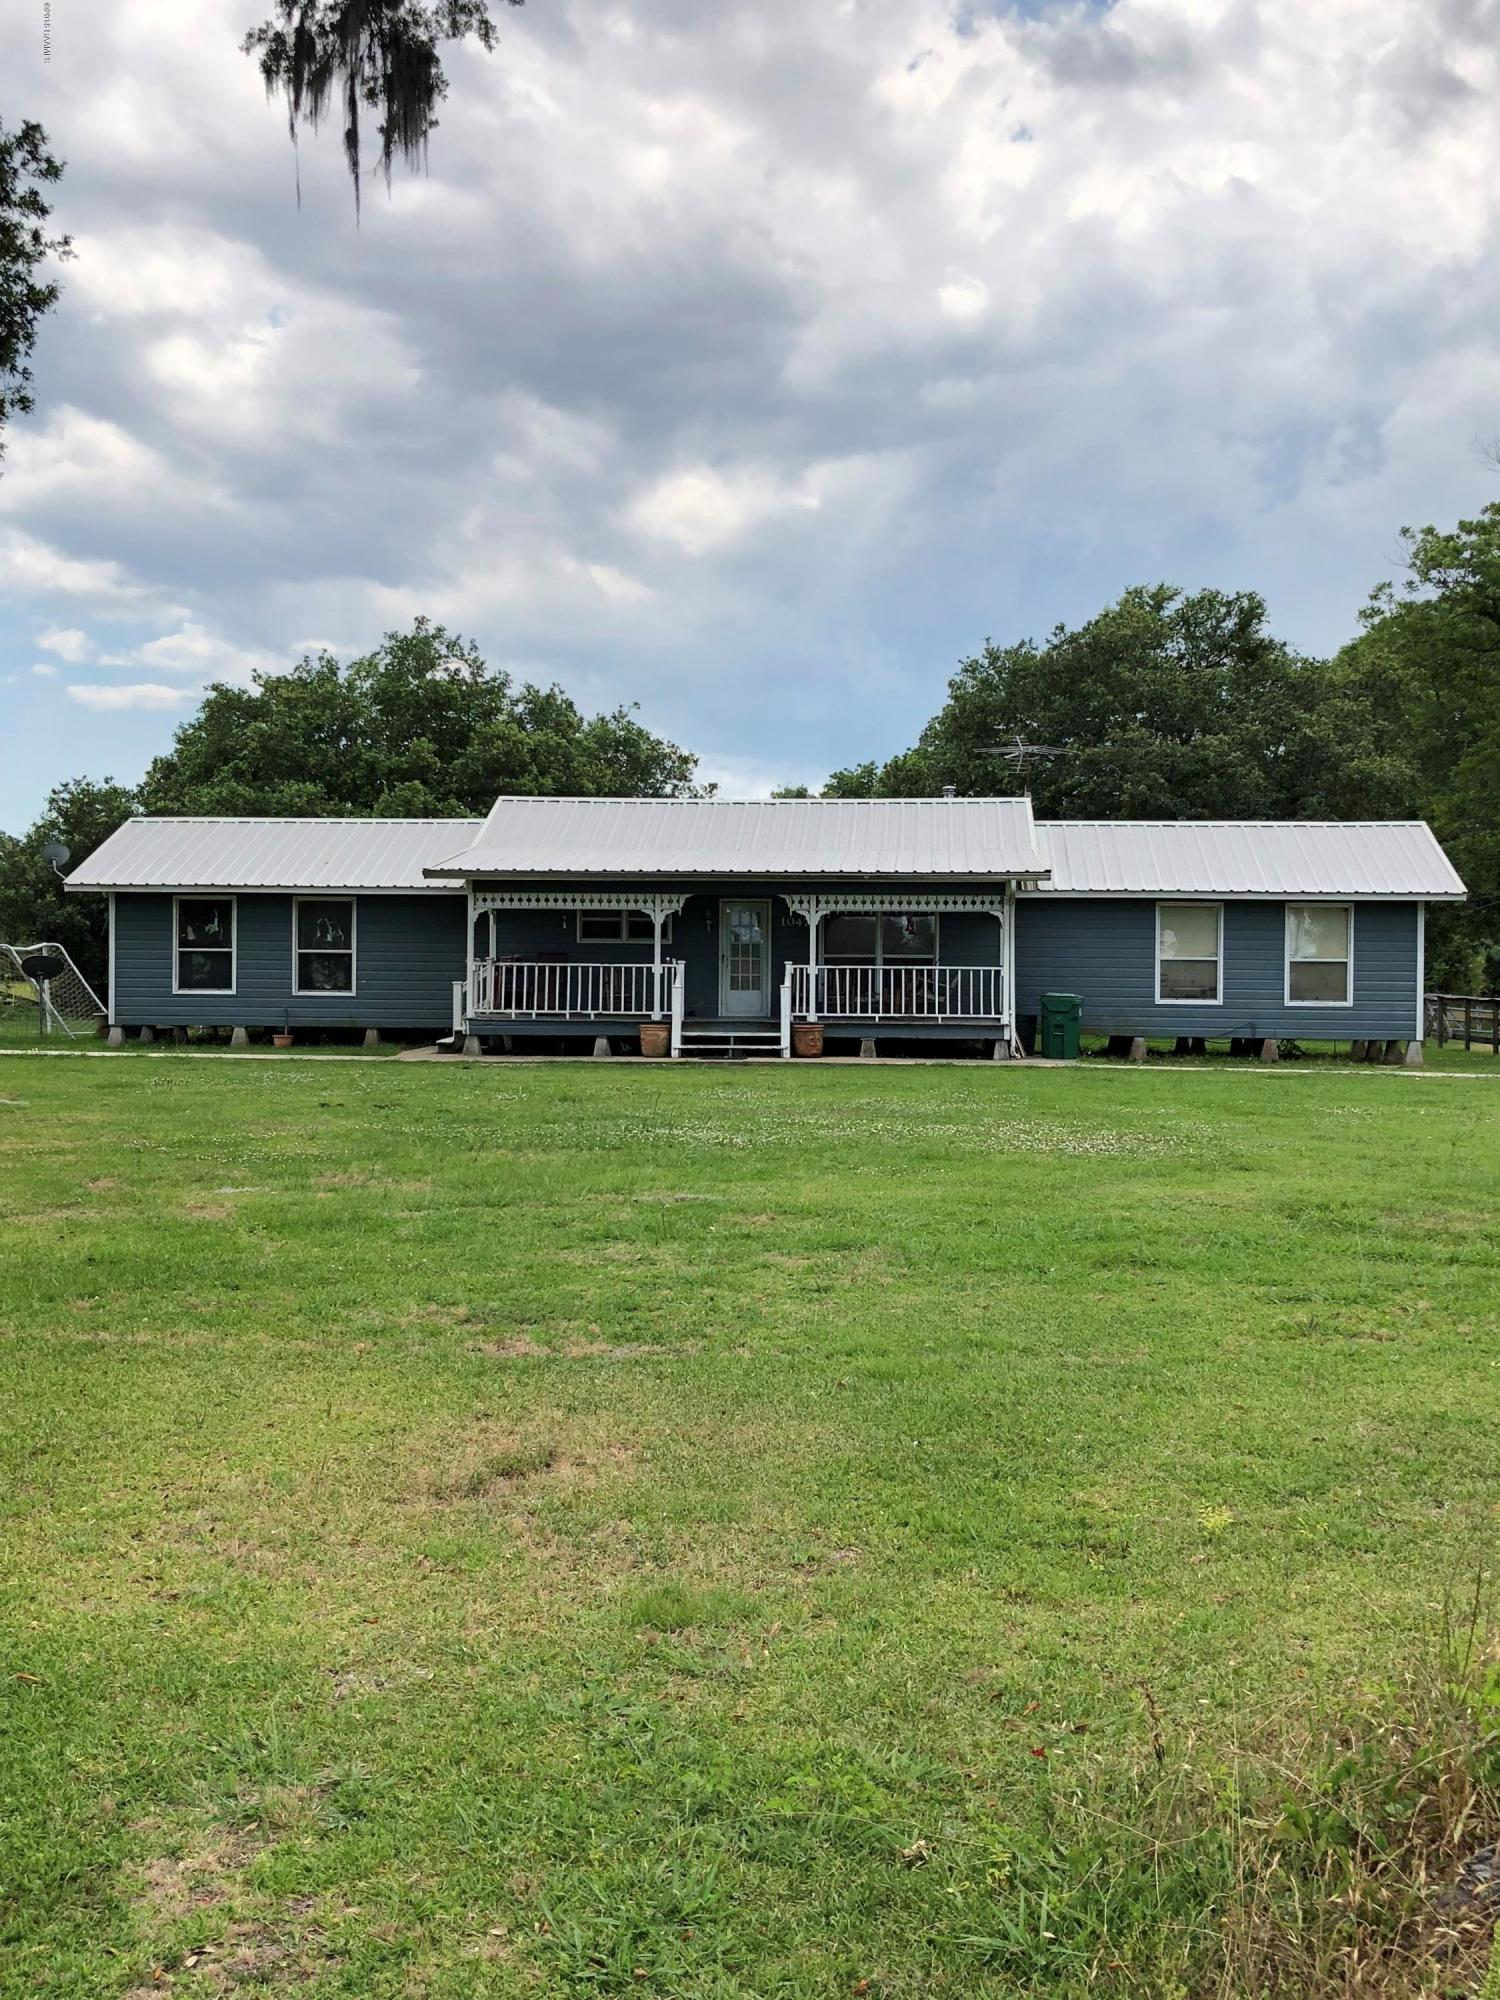 1047 Lawless Tauzin Road, Breaux Bridge, LA 70517 Photo #2